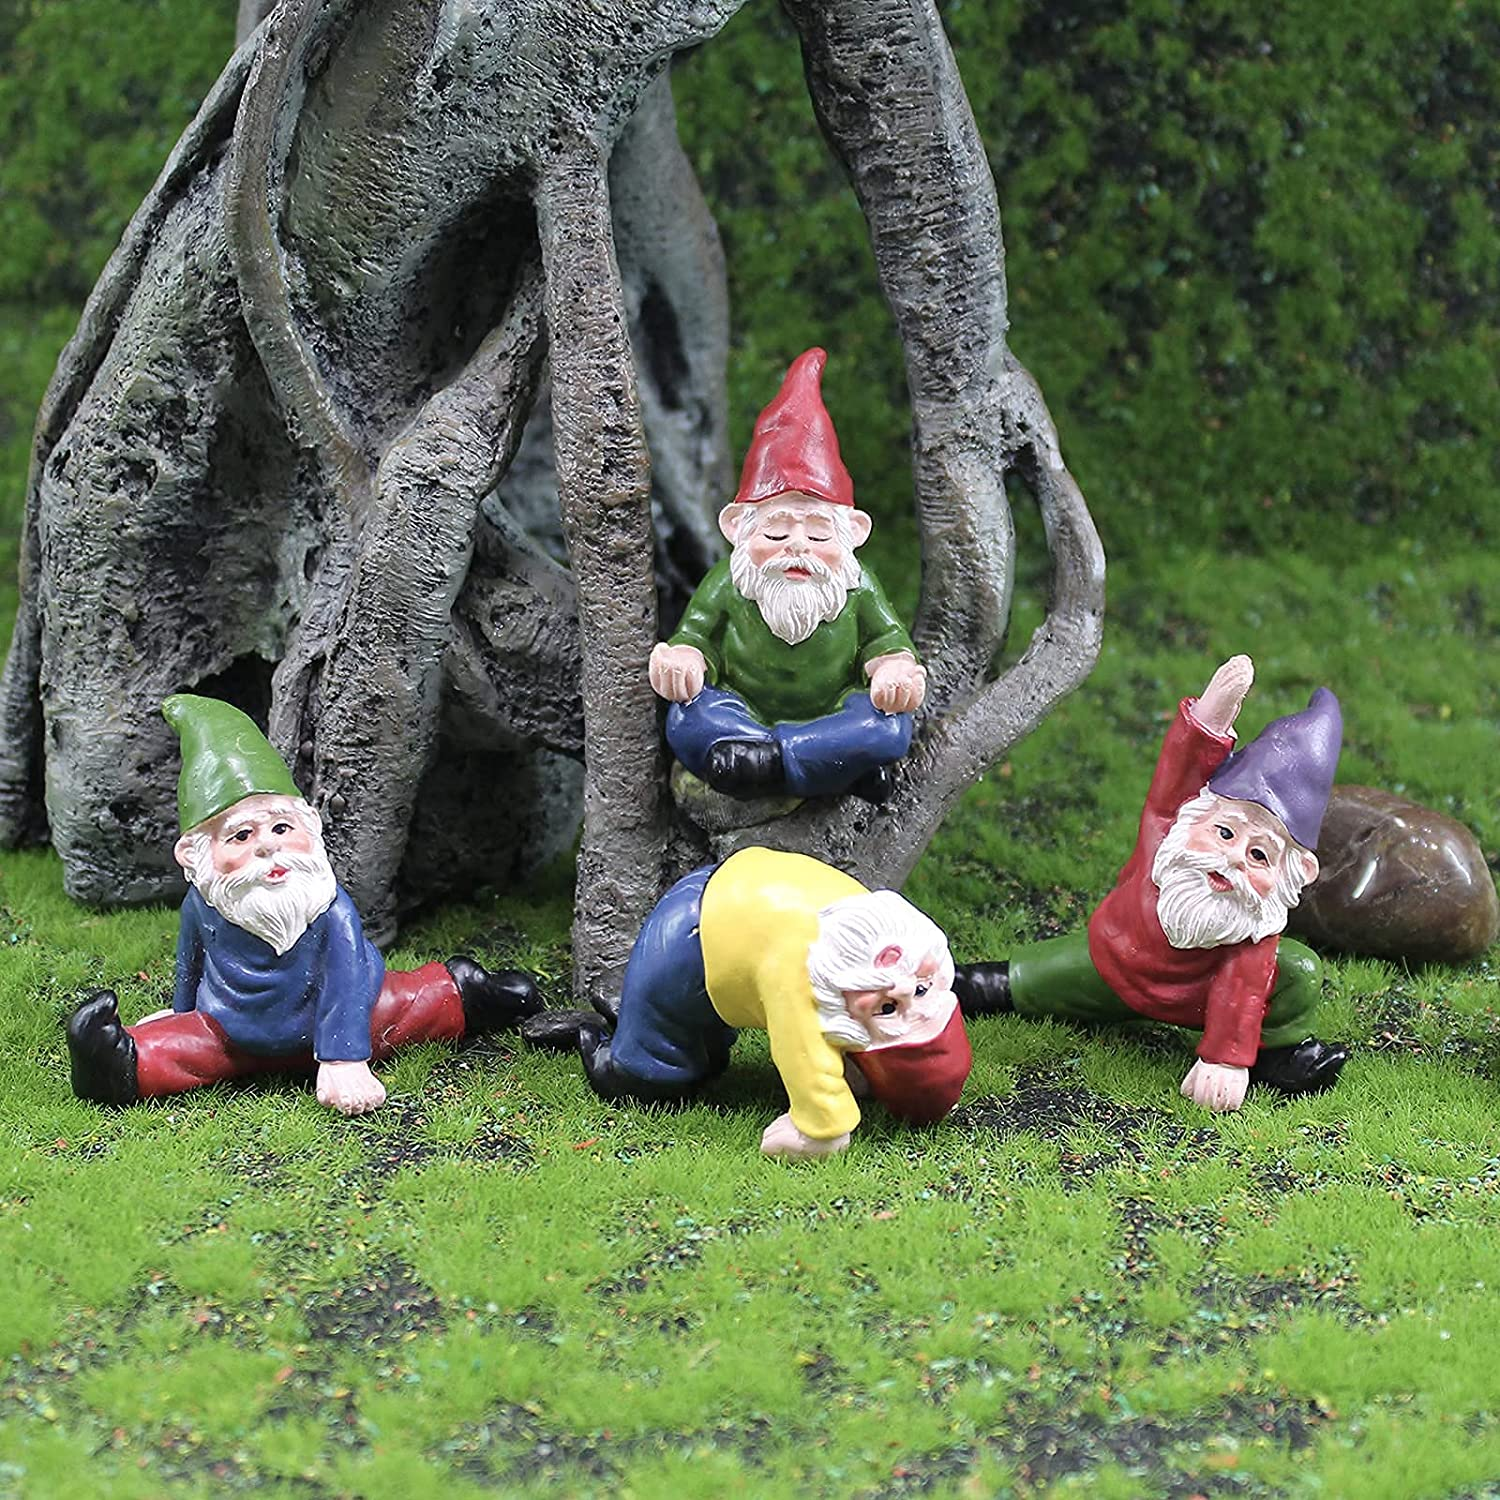 Fairy Garden Clearance SALE Limited time Accessories Yoga Flow Figurines Kit Max 44% OFF Gnomes